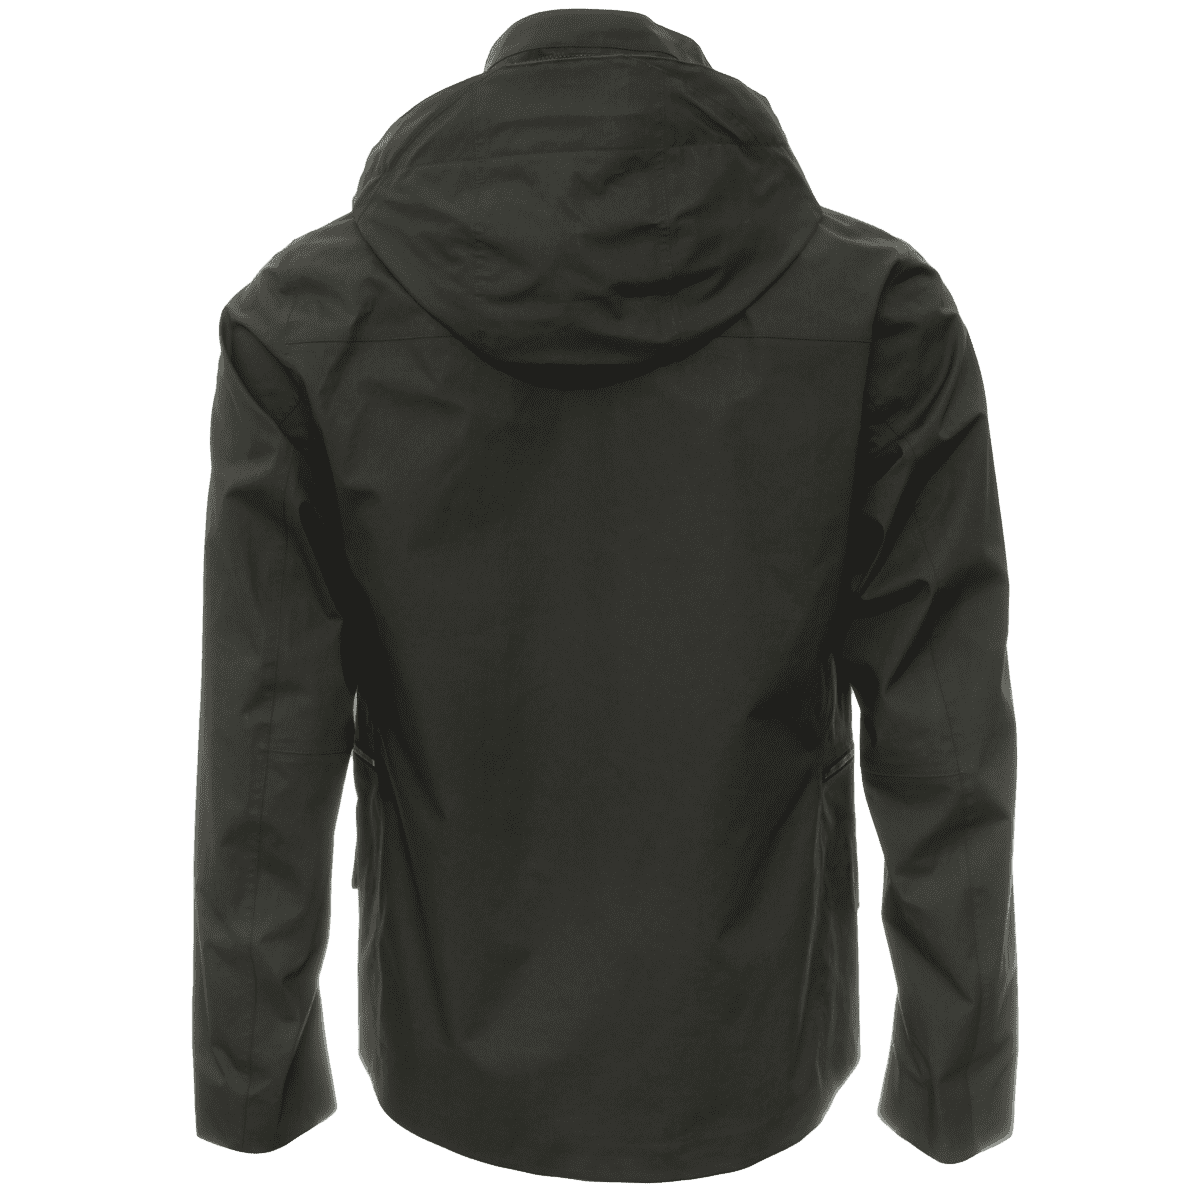 Cabinero Berlin Herrenmode SS17 C.P.Company Goggle Jacket 02CMOW122A005001A (9)